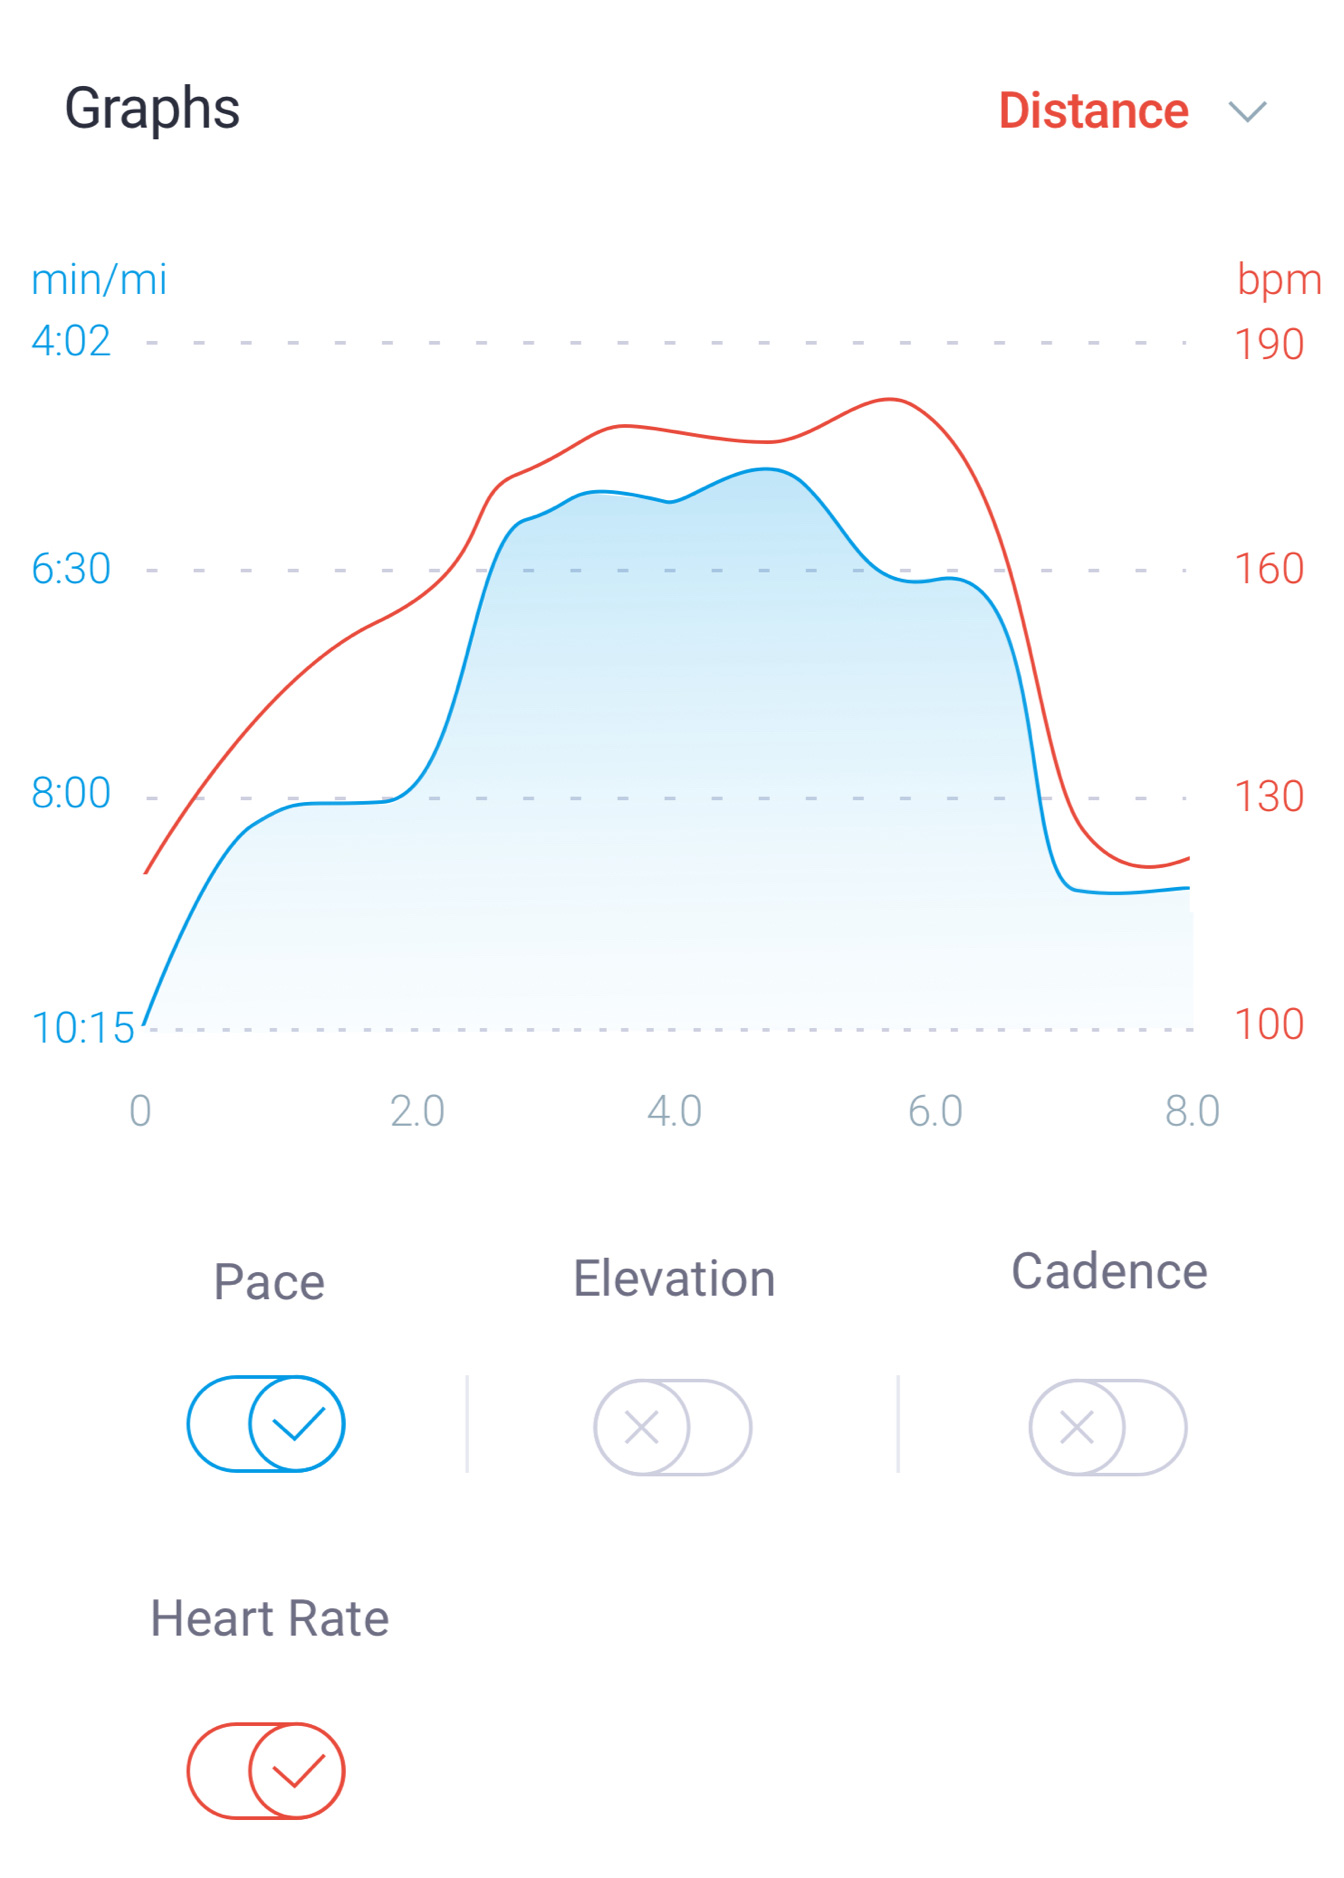 Graph of pace, elevation, cadence and heart rate data